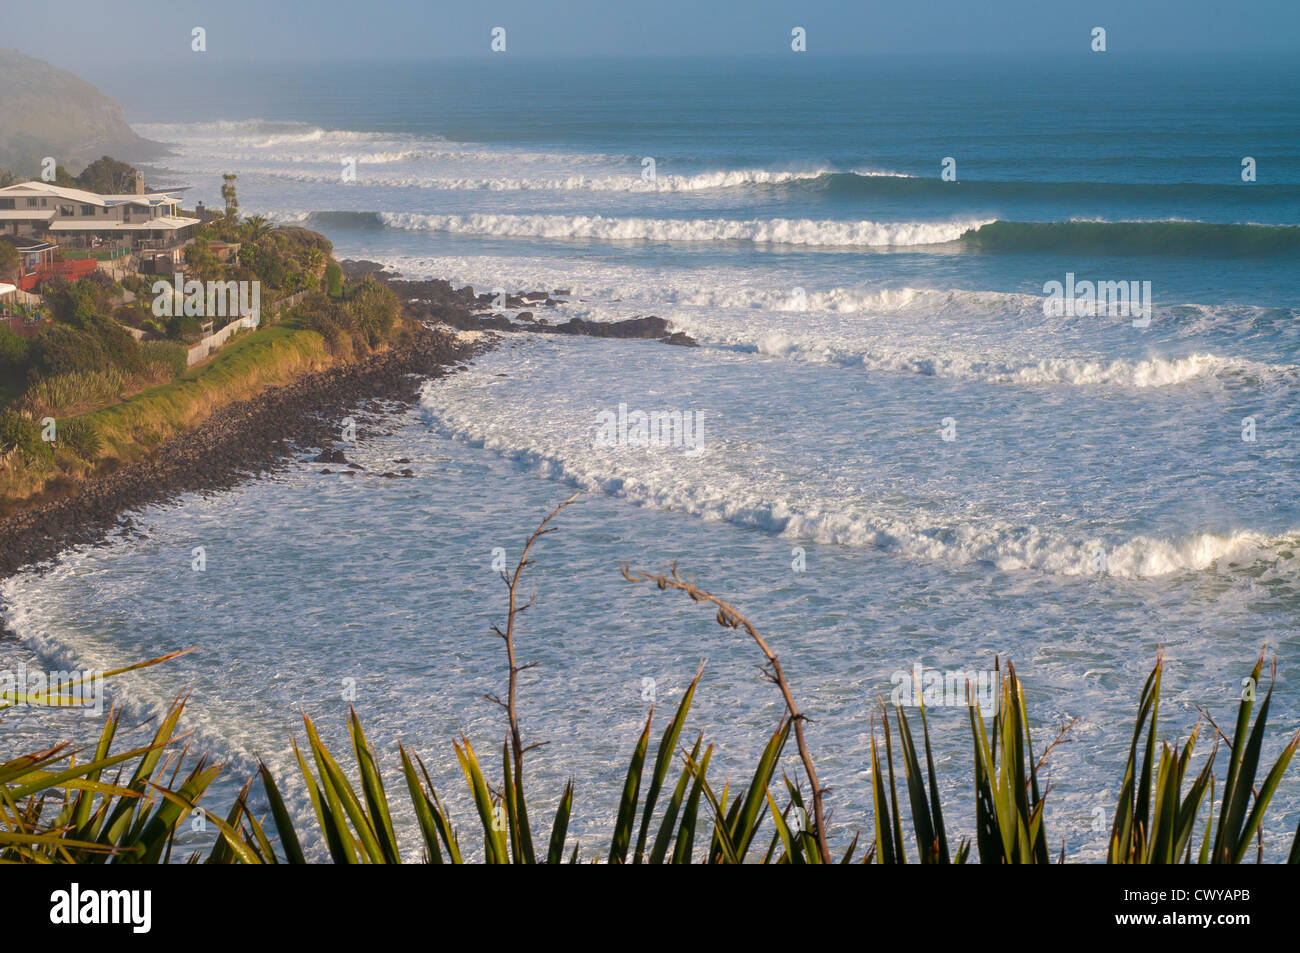 View from cliff overlooking Whale Bay, with surf points Whale Bay and Indicators in foreground. - Stock Image